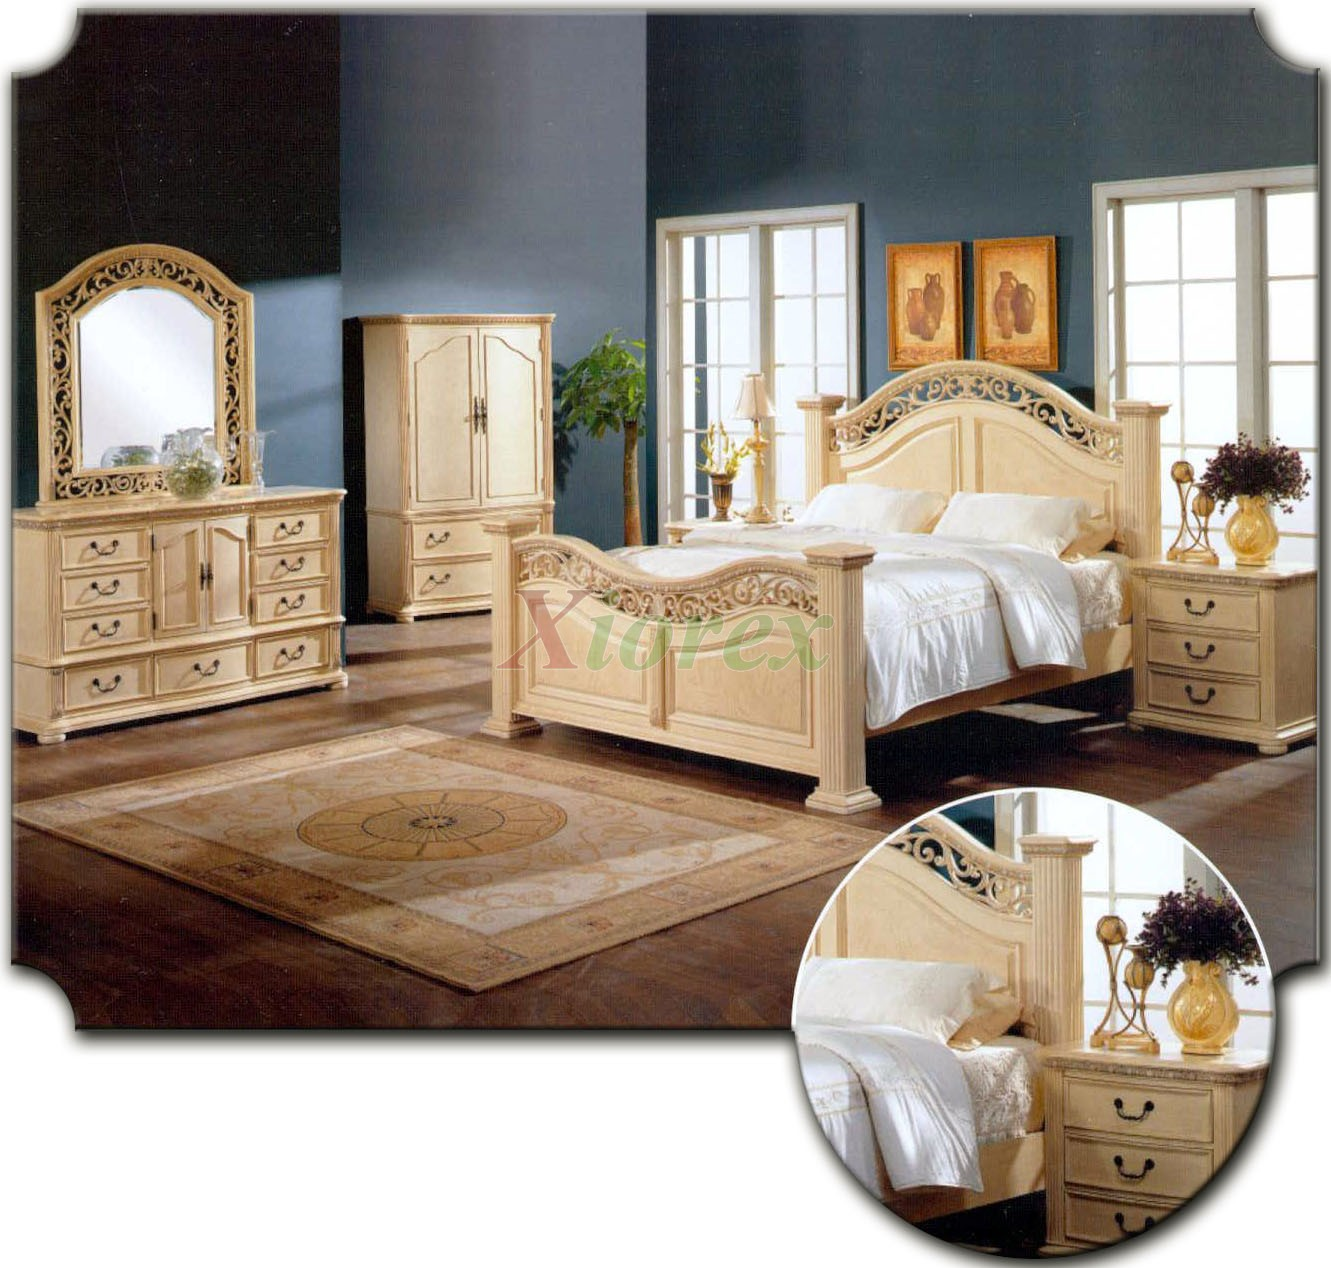 Top King Bedroom Furniture Sets 1331 x 1268 · 301 kB · jpeg